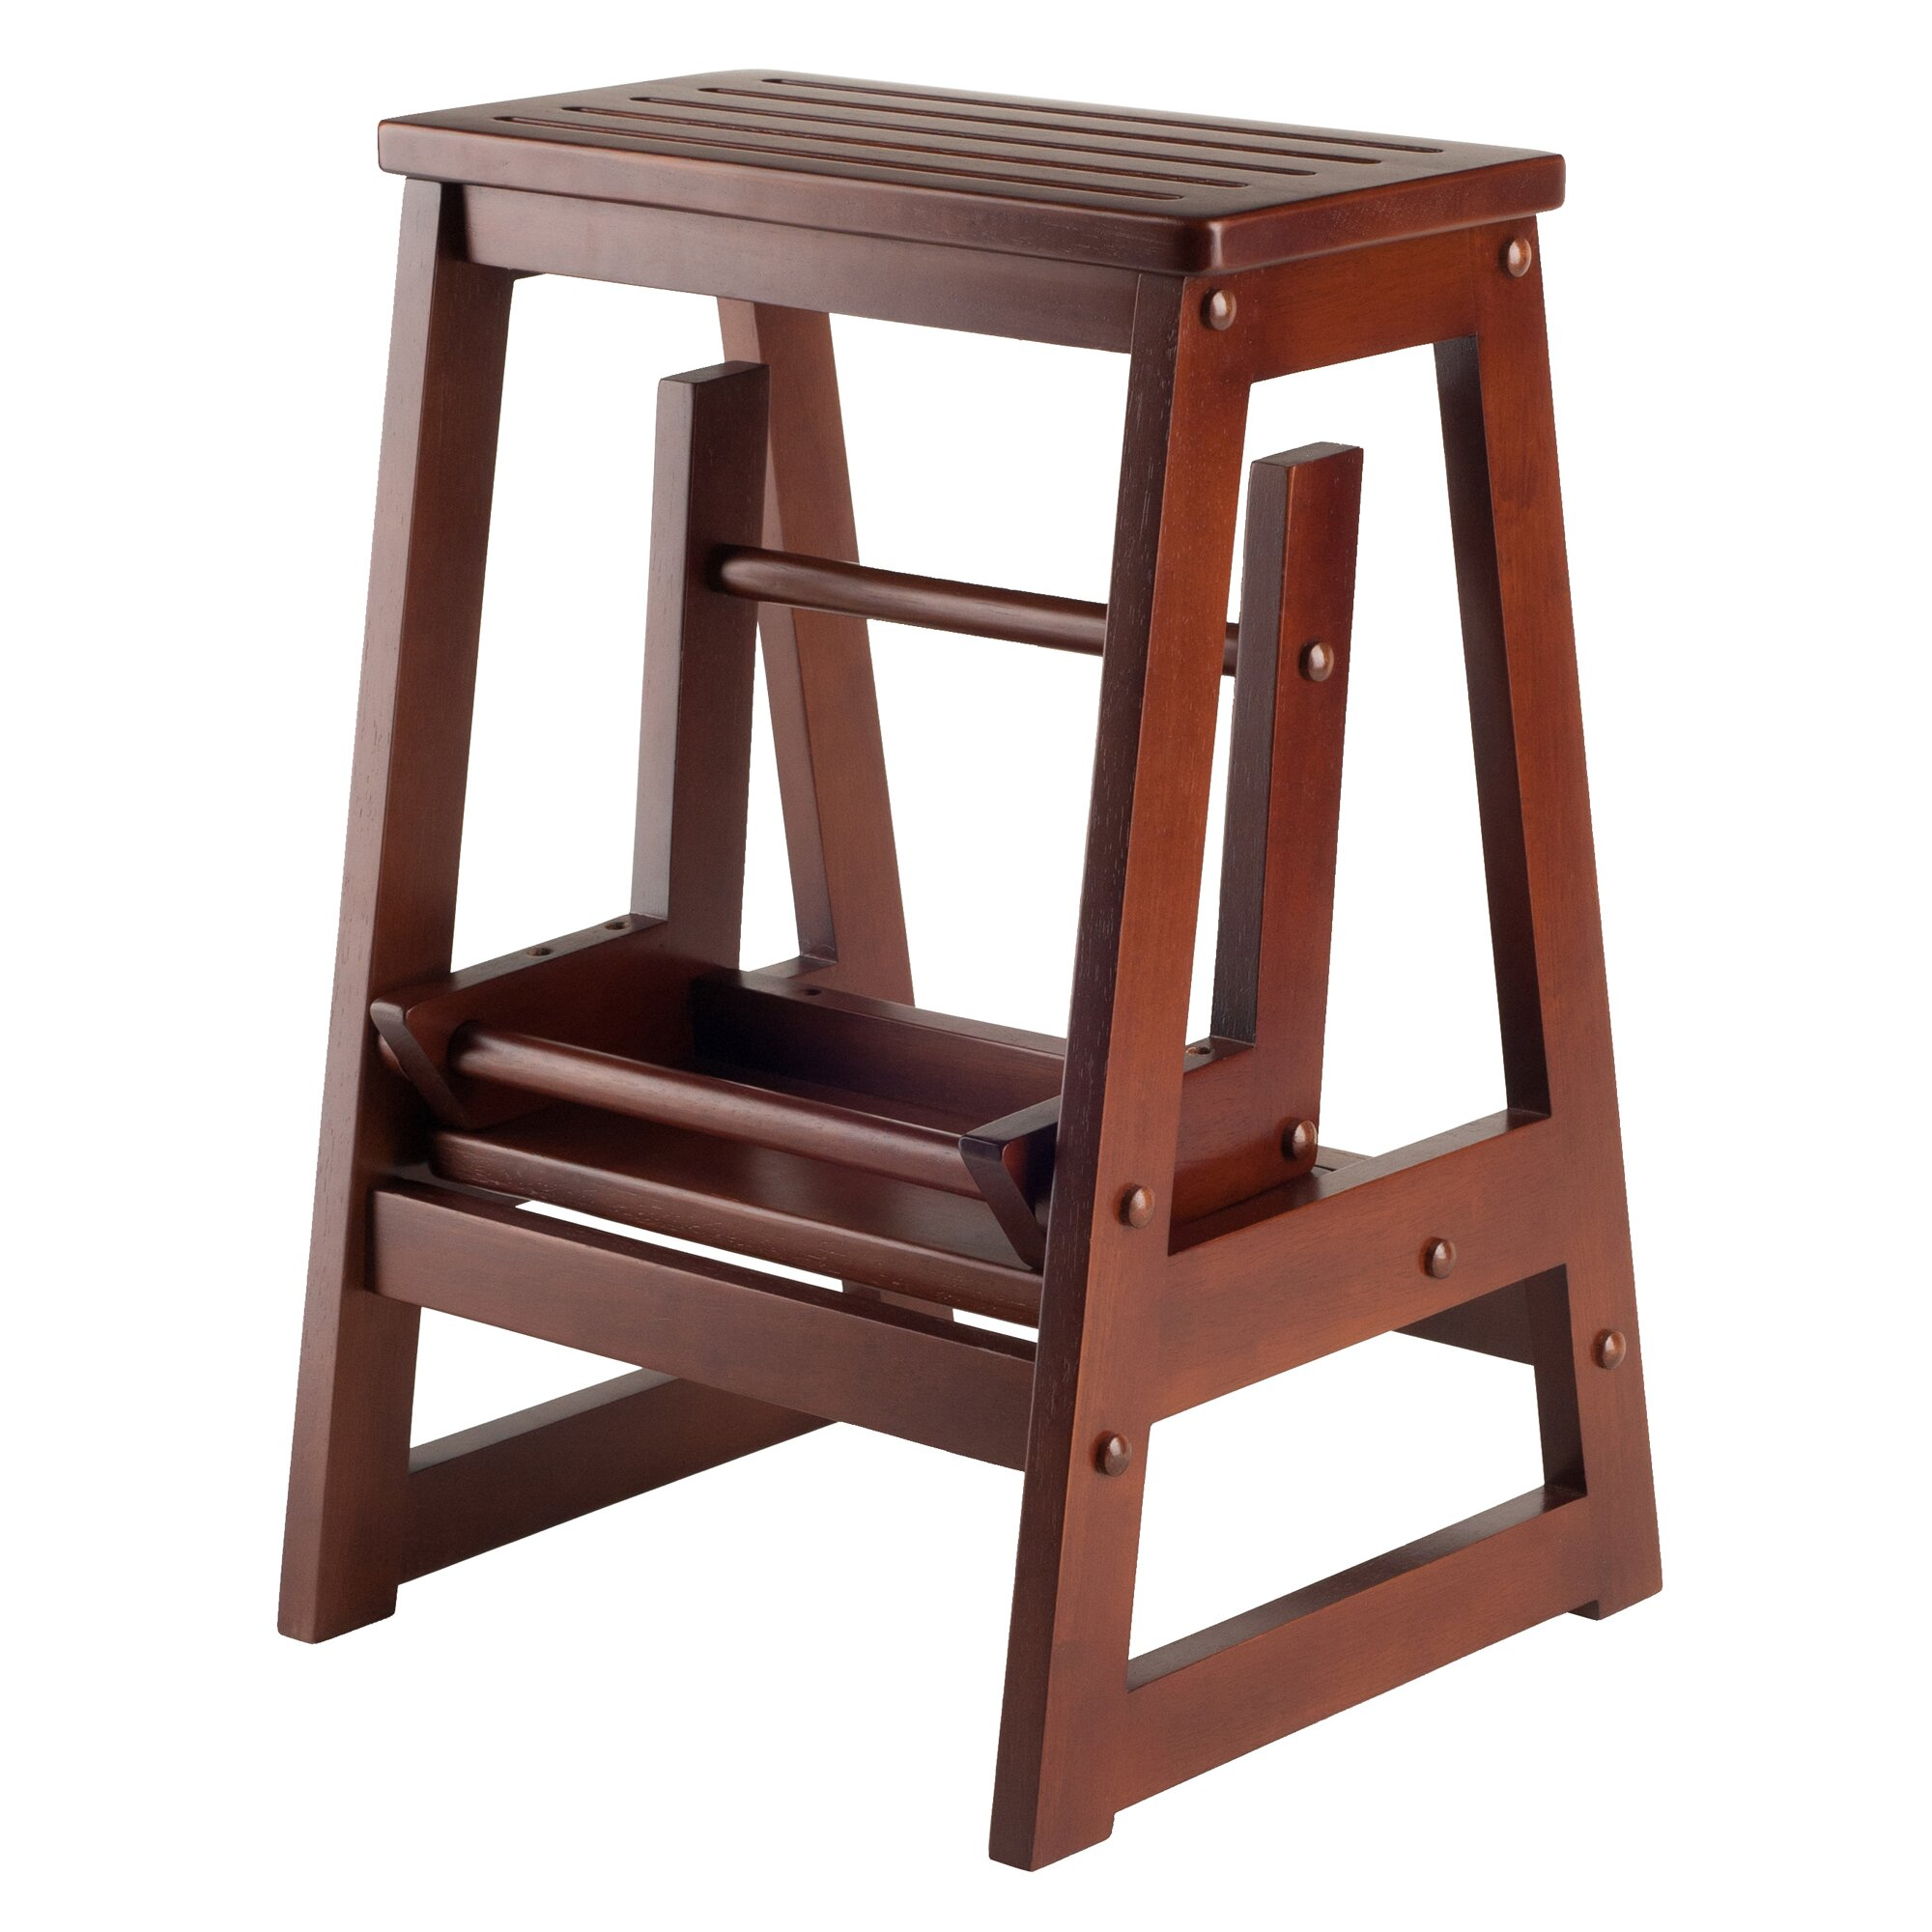 Winsome 2 Step Wood Step Stool With 200 Lb Load Capacity